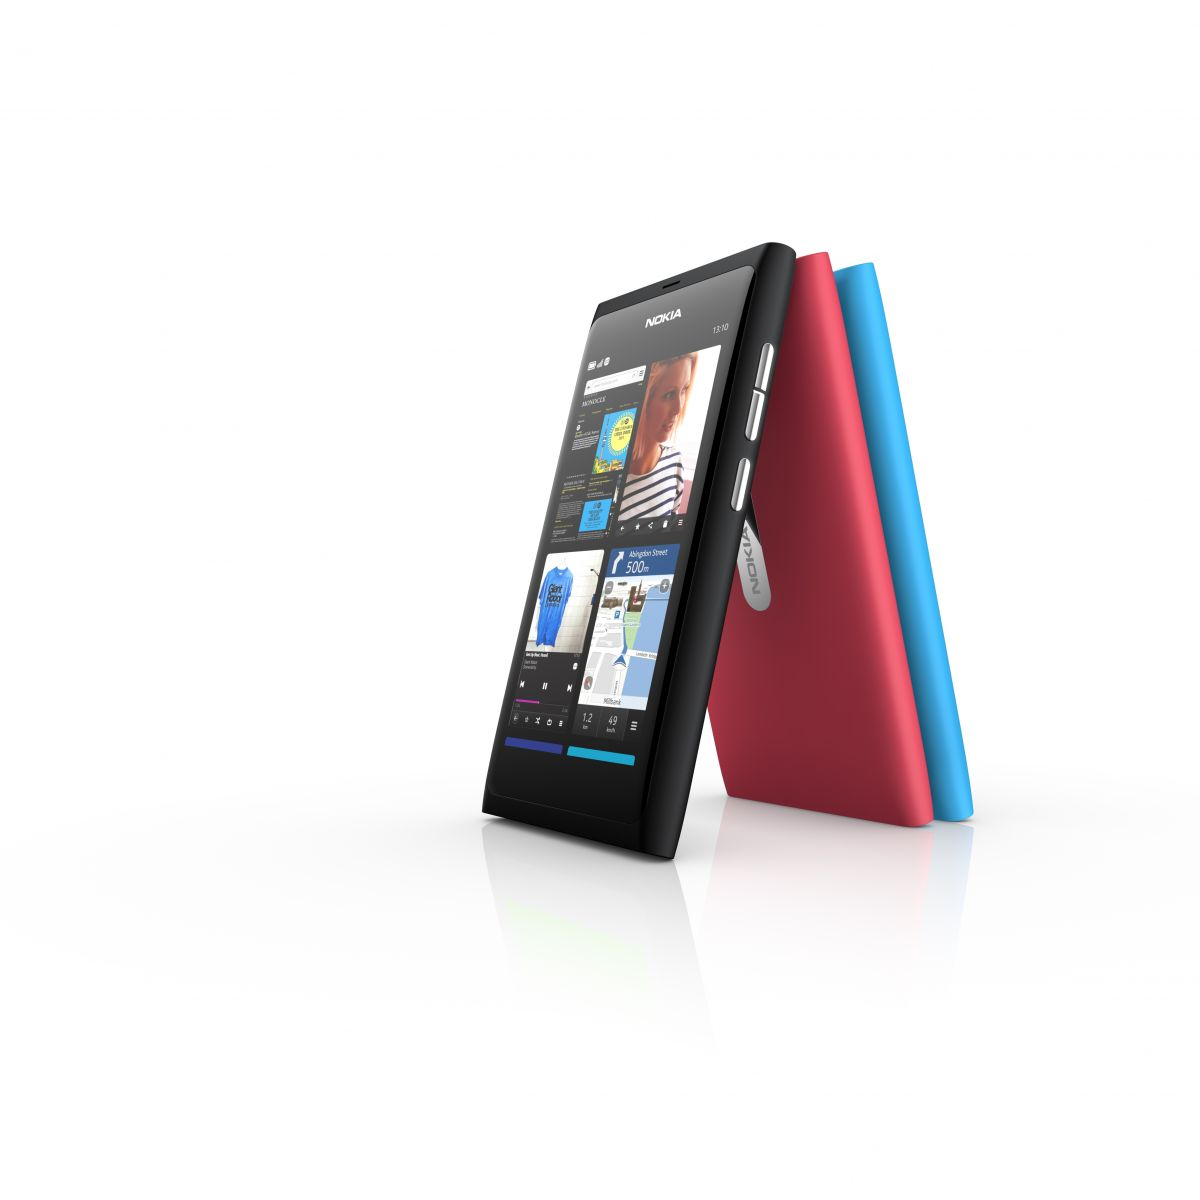 Nokia N9 - Available Colors